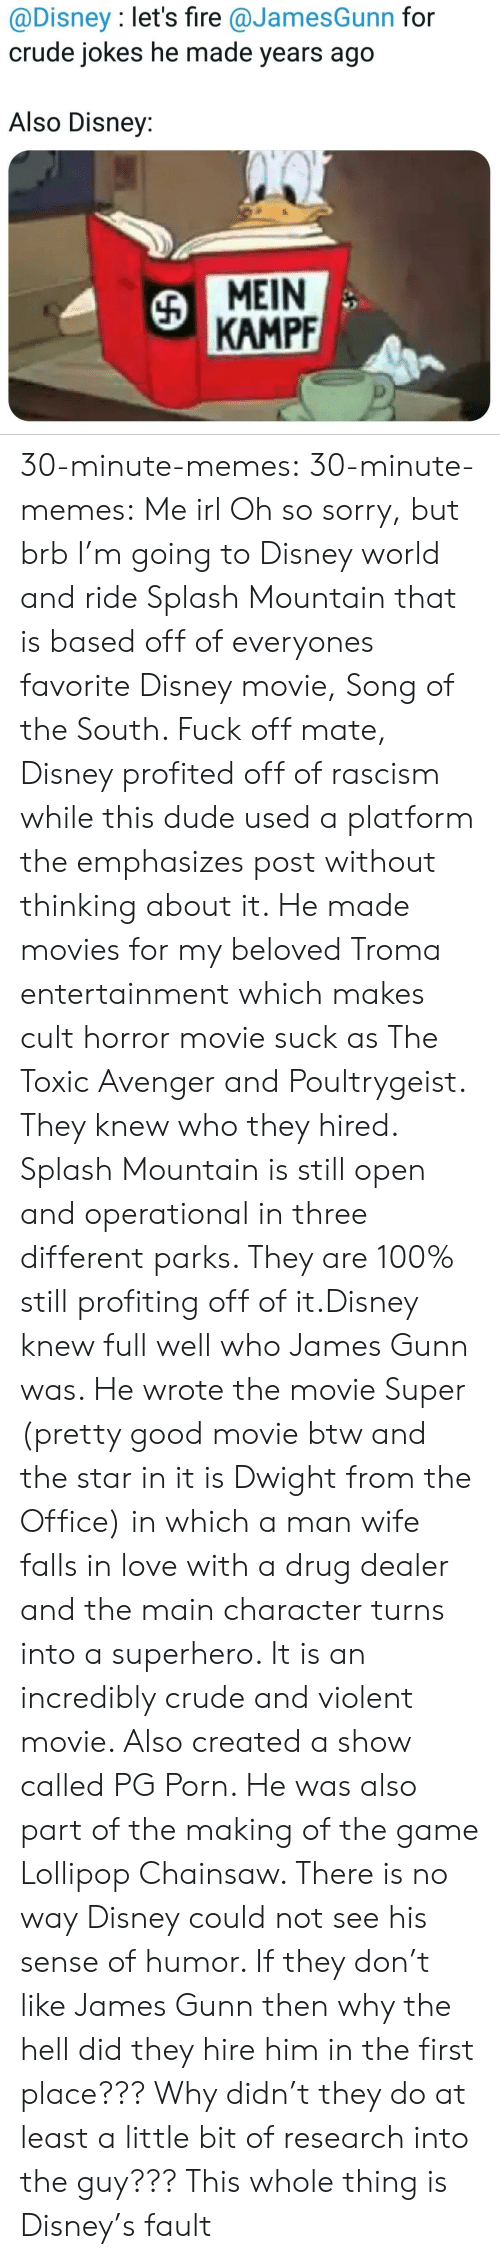 disney movie: @Disney : let's fire @JamesGunn for  crude jokes he made years ago  Also Disney:  MEIN  KAMPF 30-minute-memes: 30-minute-memes: Me irl Oh so sorry, but brb I'm going to Disney world and ride Splash Mountain that is based off of everyones favorite Disney movie, Song of the South.  Fuck off mate, Disney profited off of rascism while this dude used a platform the emphasizes post without thinking about it. He made movies for my beloved Troma entertainment which makes cult horror movie suck as The Toxic Avenger and Poultrygeist. They knew who they hired.  Splash Mountain is still open and operational in three different parks. They are 100% still profiting off of it.Disney knew full well who James Gunn was. He wrote the movie Super (pretty good movie btw and the star in it is Dwight from the Office) in which a man wife falls in love with a drug dealer and the main character turns into a superhero. It is an incredibly crude and violent movie. Also created a show called PG Porn. He was also part of the making of the game Lollipop Chainsaw. There is no way Disney could not see his sense of humor. If they don't like James Gunn then why the hell did they hire him in the first place??? Why didn't they do at least a little bit of research into the guy??? This whole thing is Disney's fault